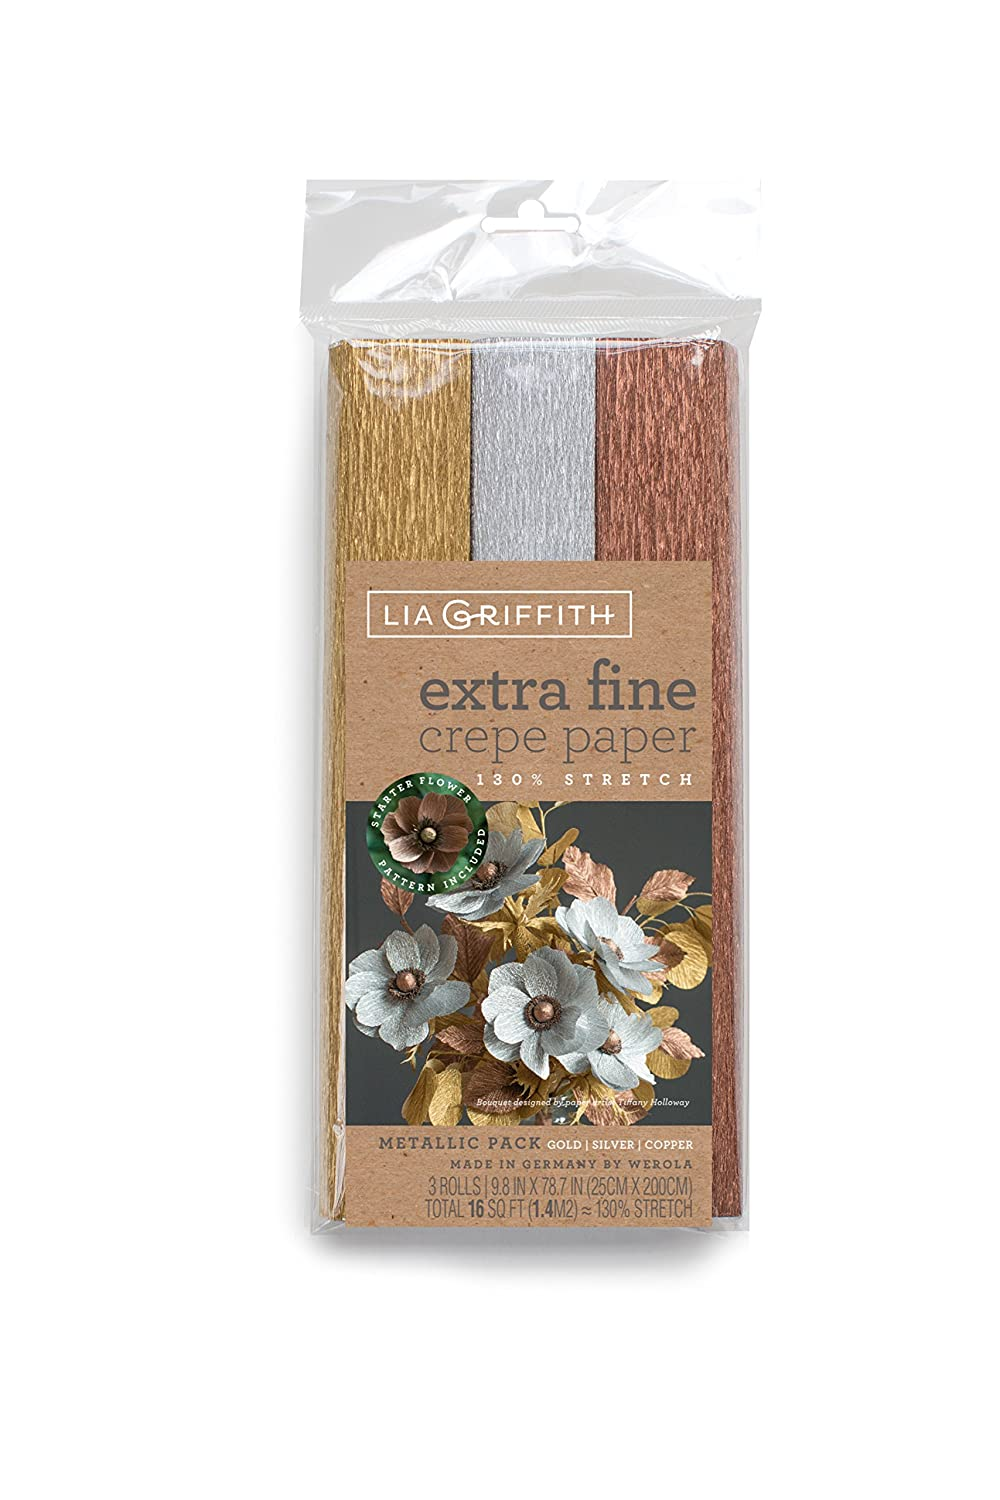 Lia Griffith Extra Fine Crepe Paper, Metallic Assortment, 3 Count Pacon Corporation LG11029